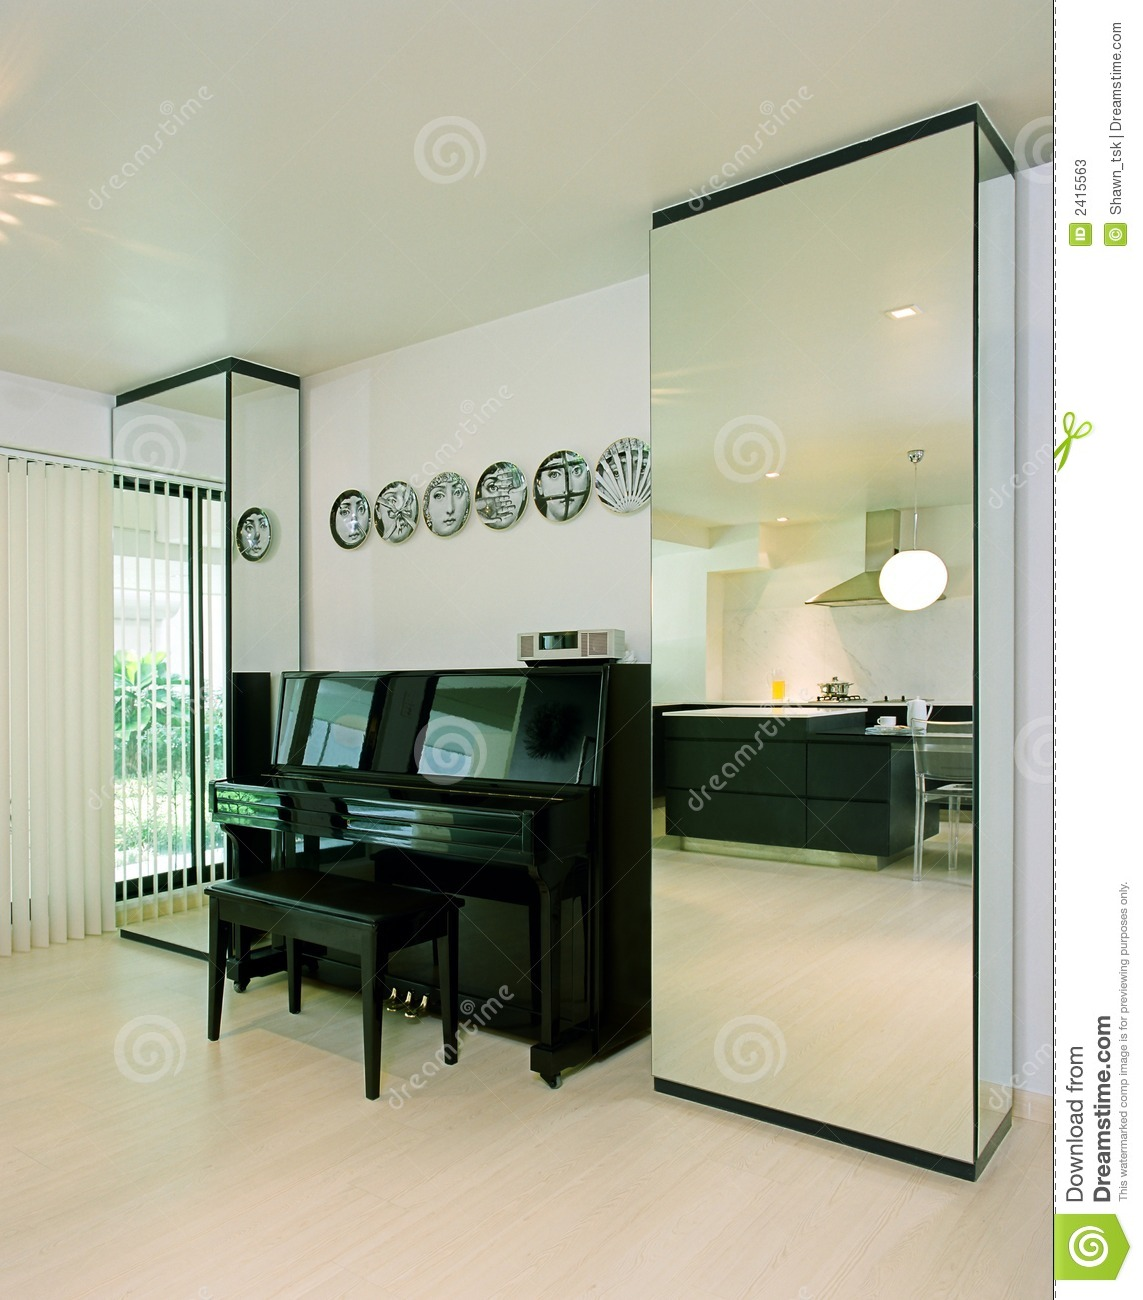 Interior design piano stock image Image of architecture  : interior design piano 2415563 from www.dreamstime.com size 1143 x 1300 jpeg 254kB